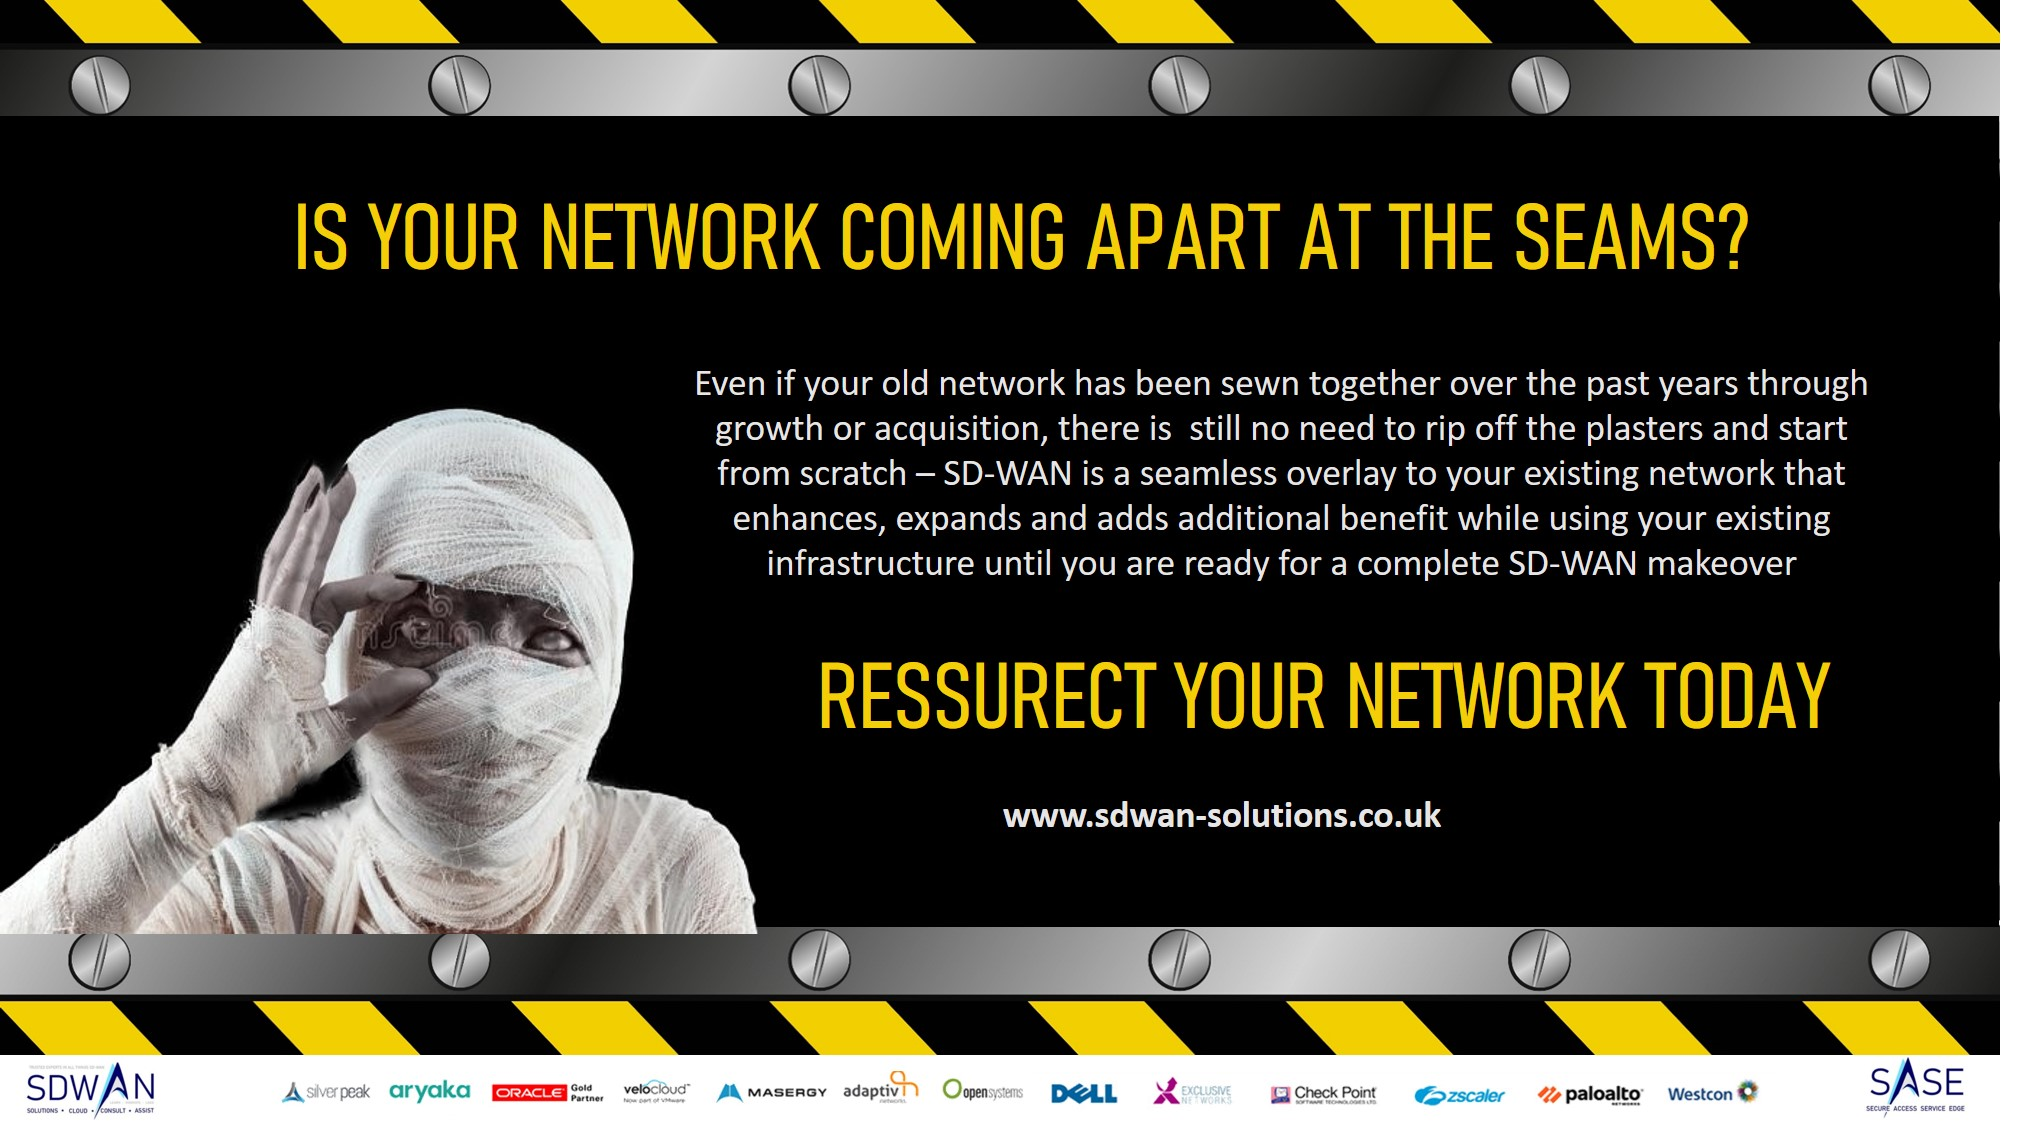 Is your network coming apart at the seams